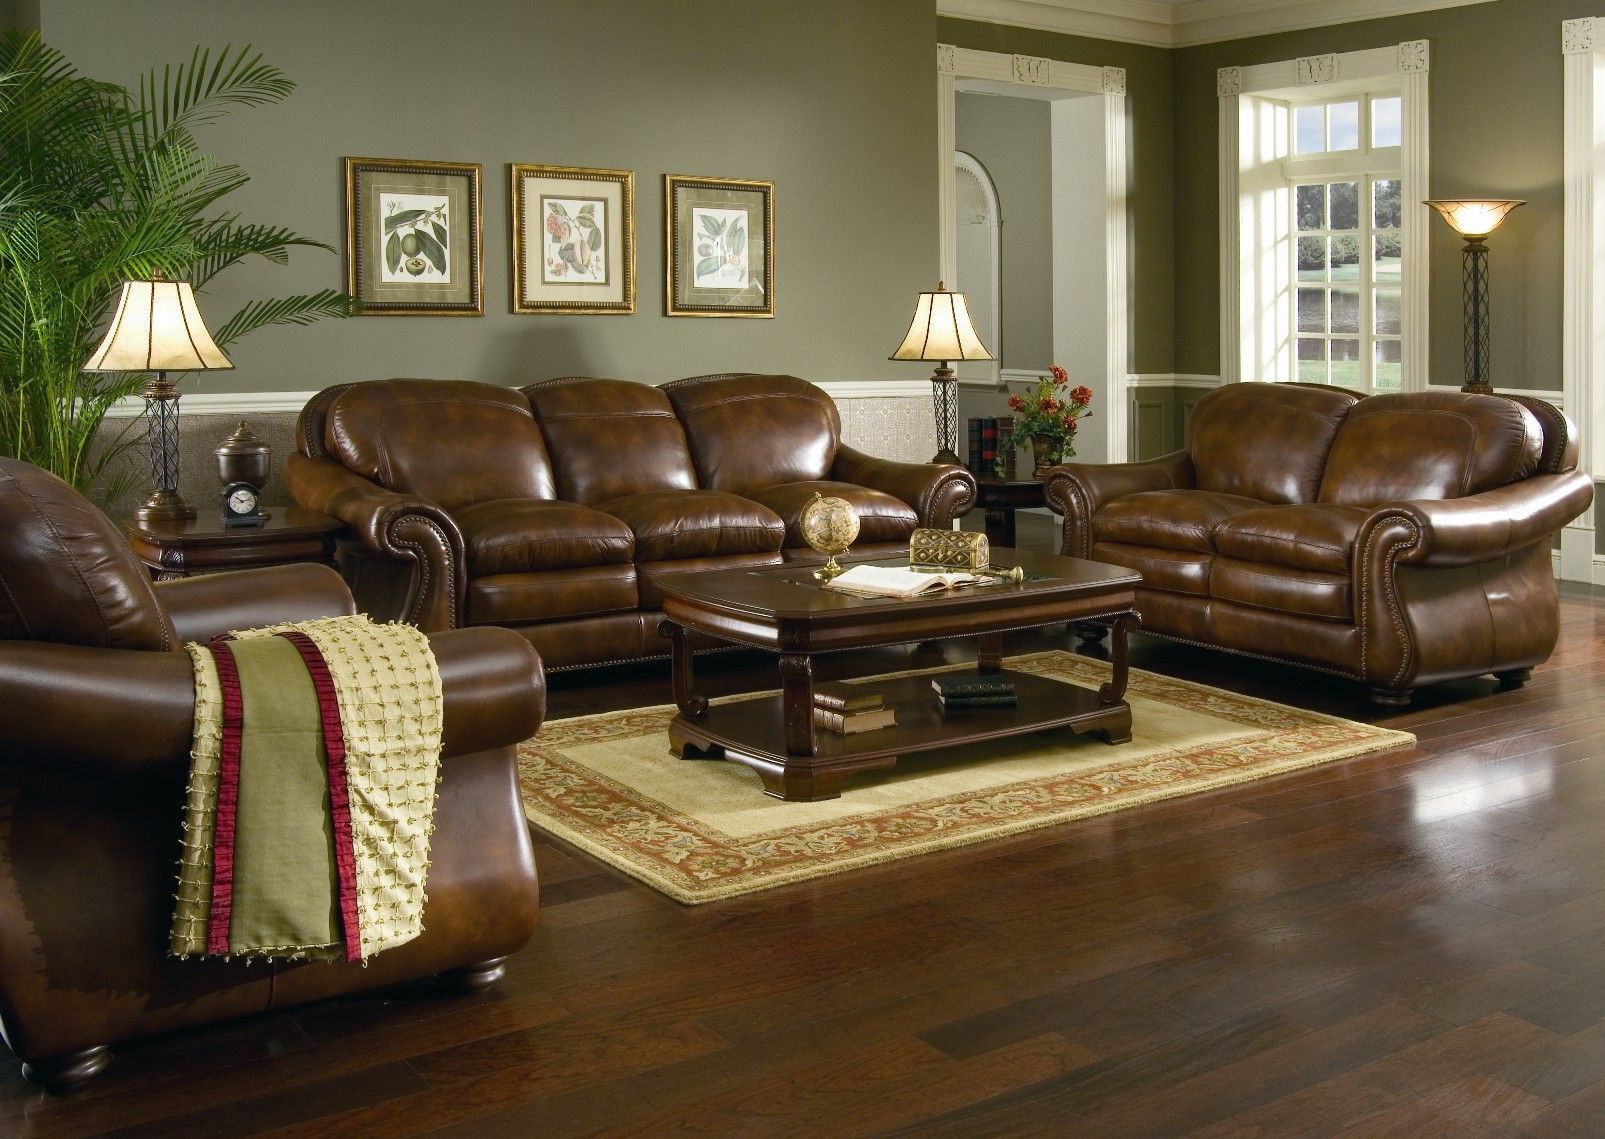 25 best ideas about Brown Leather Furniture on Pinterest